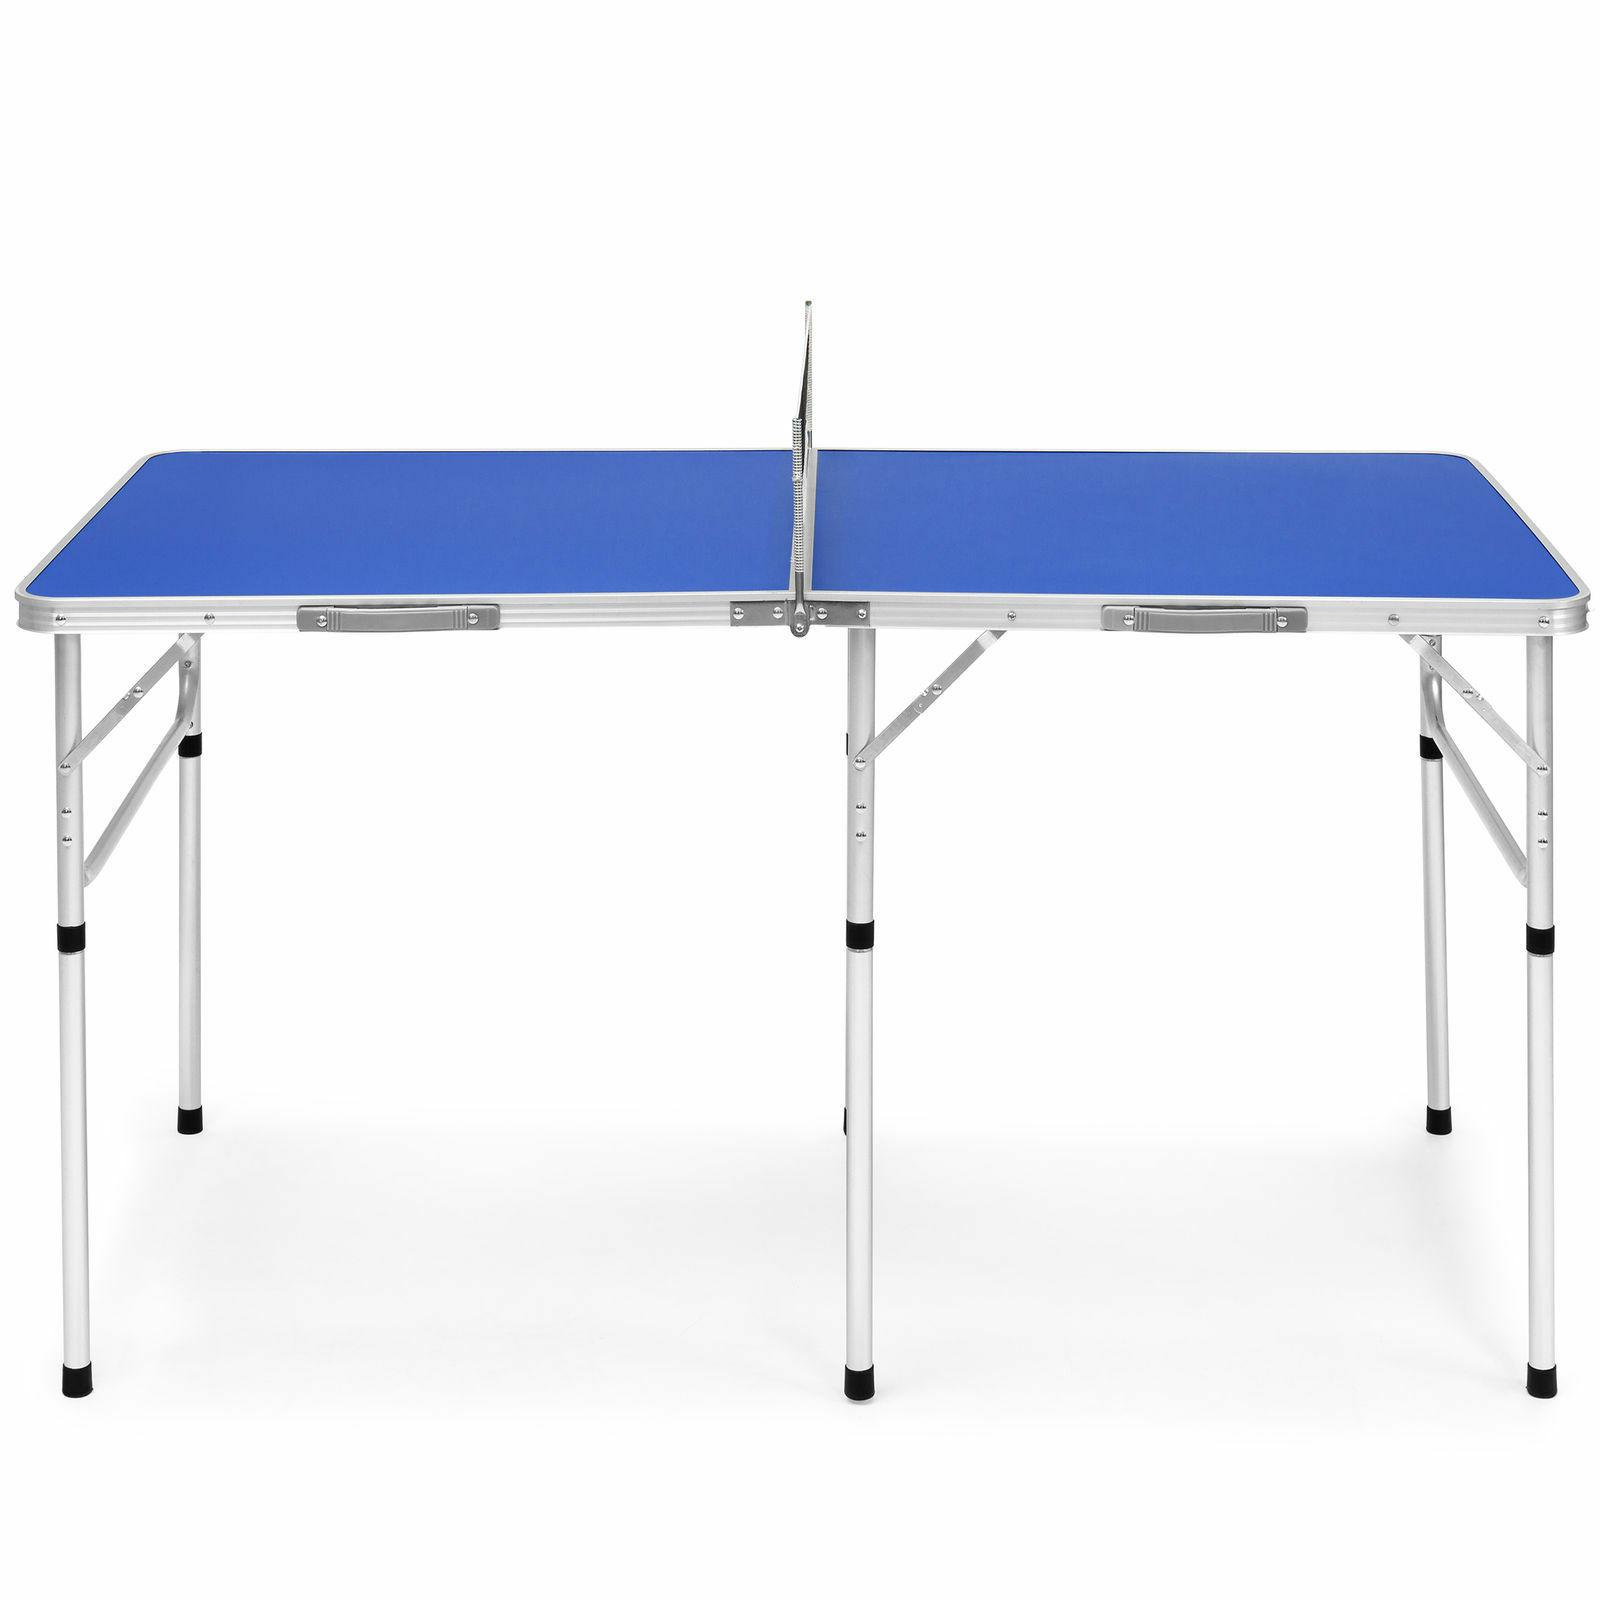 Blue Ping Pong Game Ball In/Outdoor